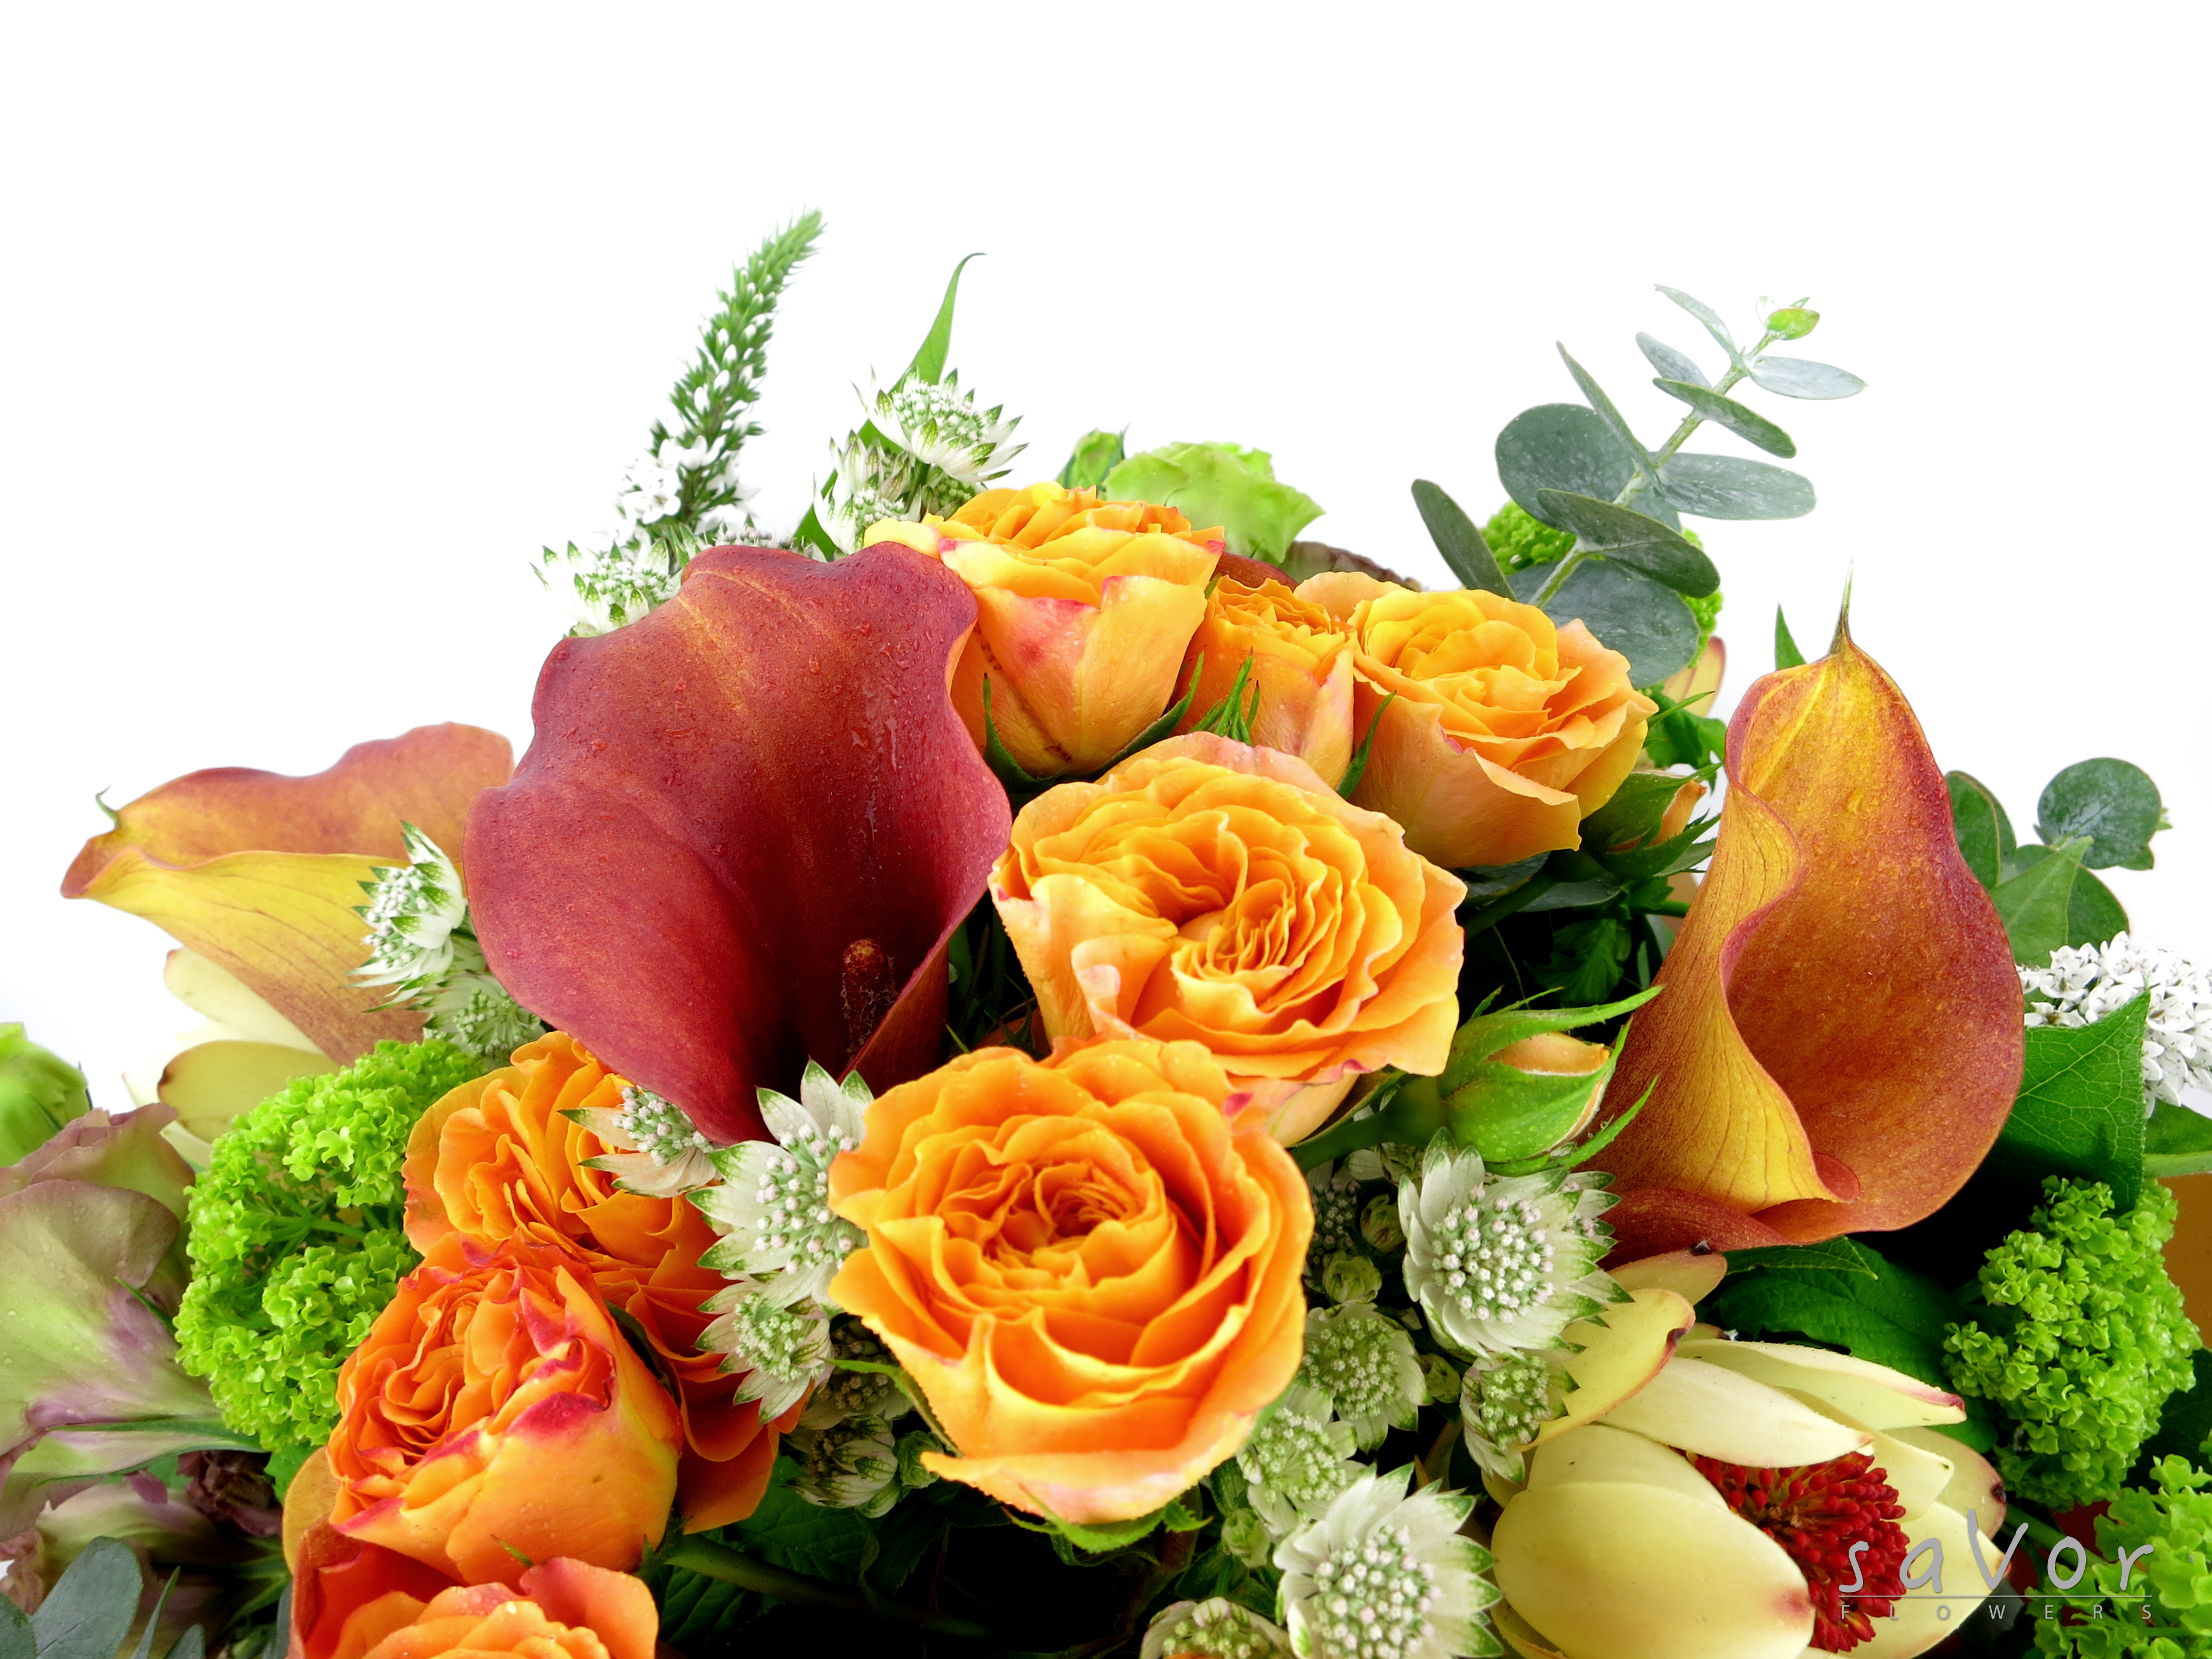 Yellow Lilies Orange Little Rose Green Viburnum And Assorted